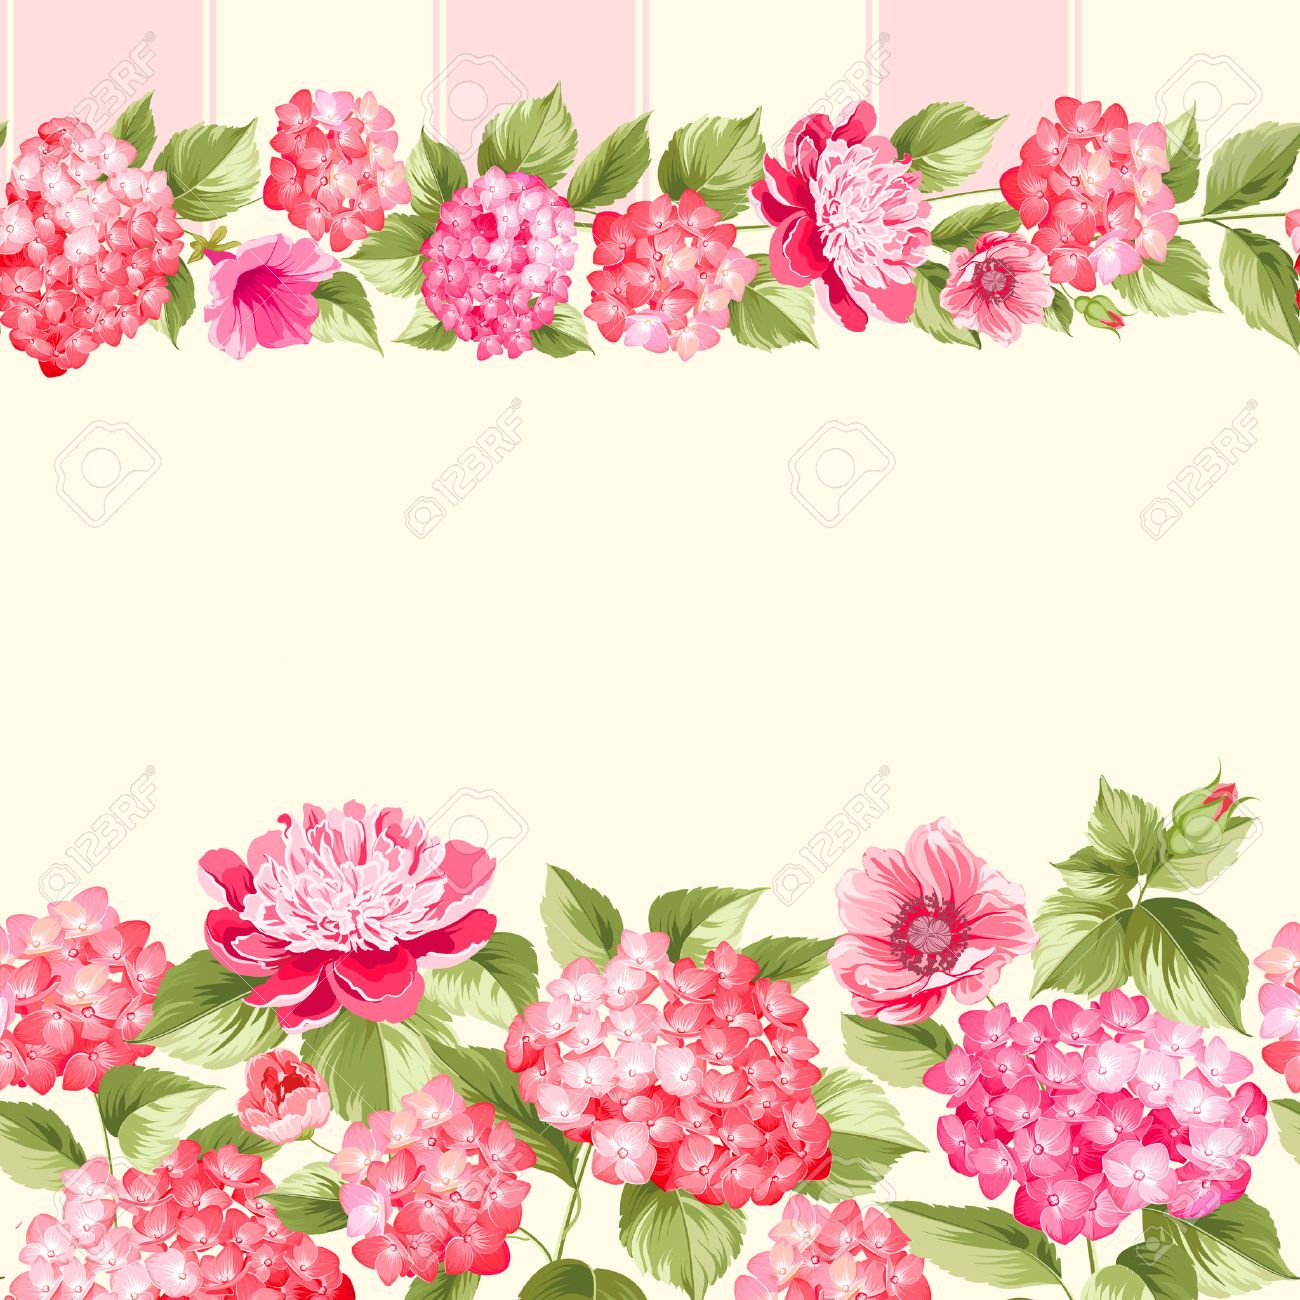 pink flower border with tile. elegant vintage card design. roses